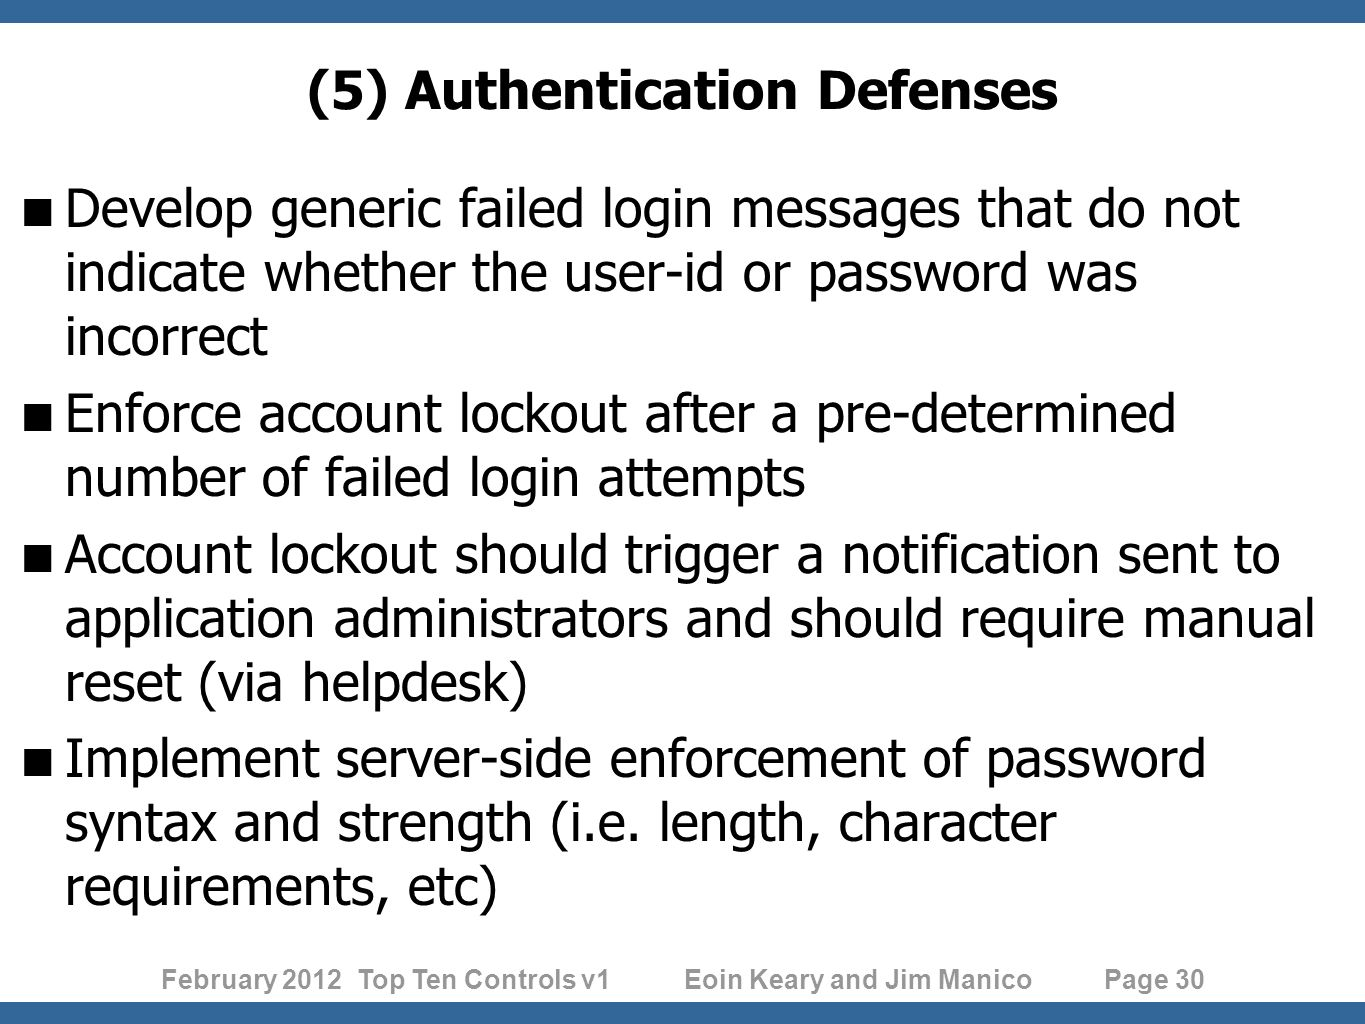 February 2012 Top Ten Controls v1 Eoin Keary and Jim Manico Page 30 (5) Authentication Defenses Develop generic failed login messages that do not indicate whether the user-id or password was incorrect Enforce account lockout after a pre-determined number of failed login attempts Account lockout should trigger a notification sent to application administrators and should require manual reset (via helpdesk) Implement server-side enforcement of password syntax and strength (i.e.